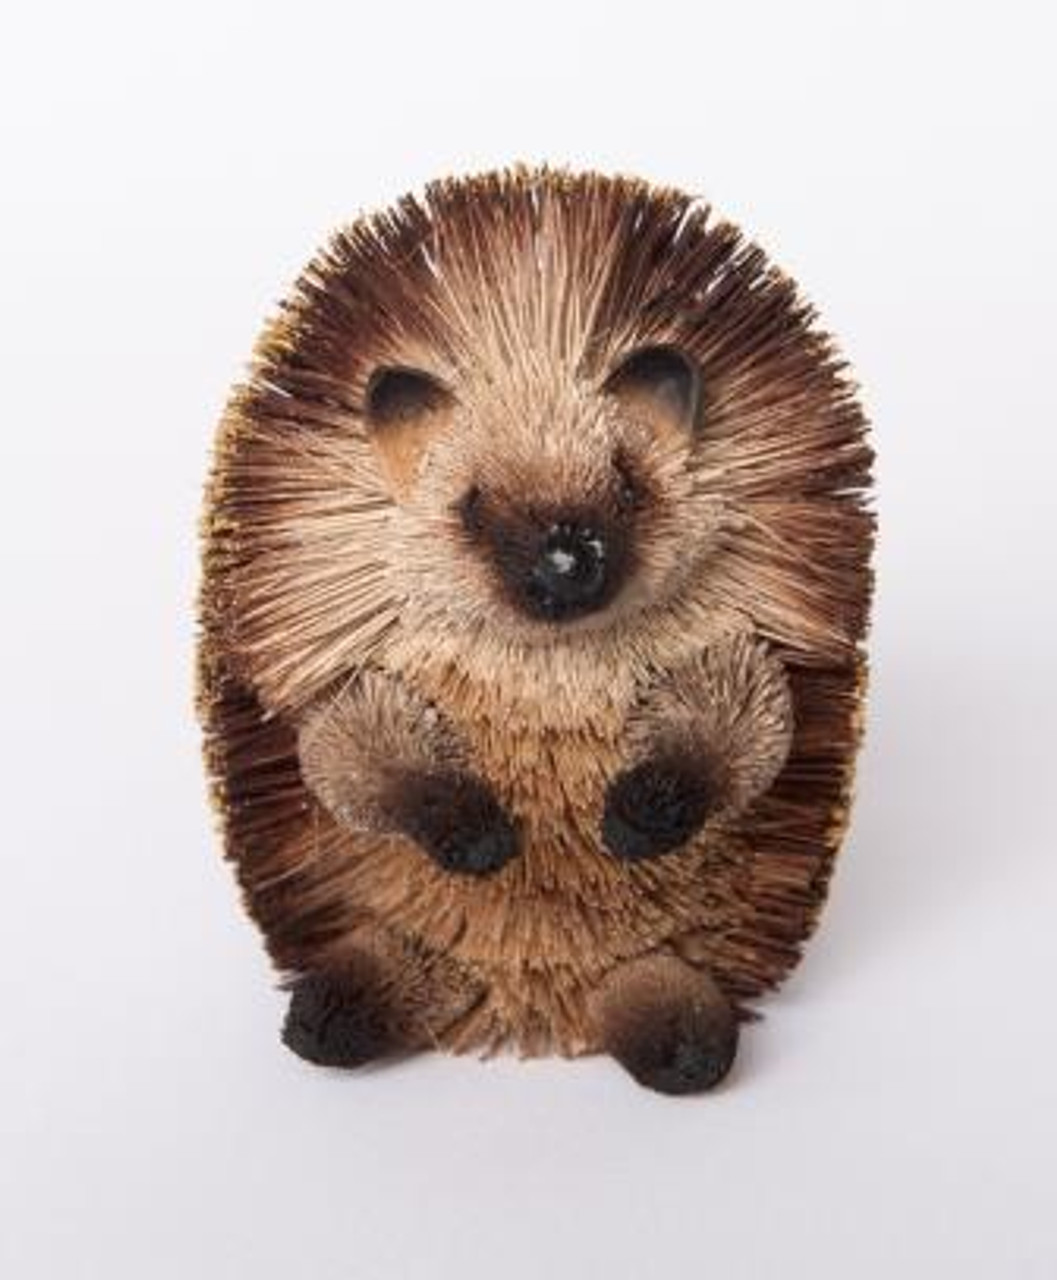 Beautifully Handcrafted, Handmade and all Natural Hedgehog sitting up. Medium size 15cm